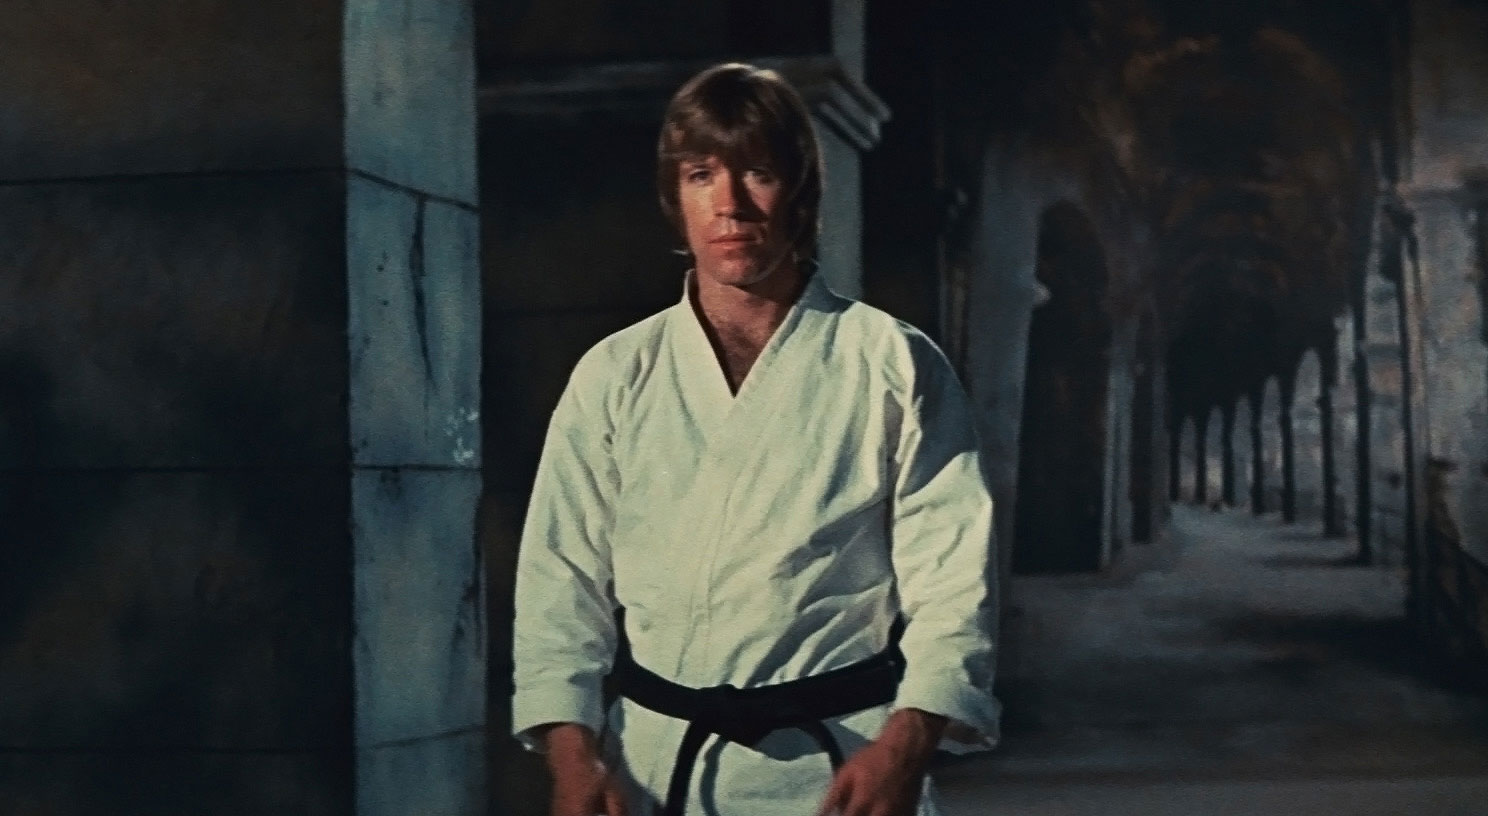 """Carlos Ray """"Chuck"""" Norris is known as possibly the toughest guy in existence. He is well established in martial arts and earned his black belt in Brazilian Jiu-Jitsu from the Machado family. Chuck made his movie debut in 1969 with The Wrecking Crew and was the star of the long-running CBS drama series Walker, Texas […]"""